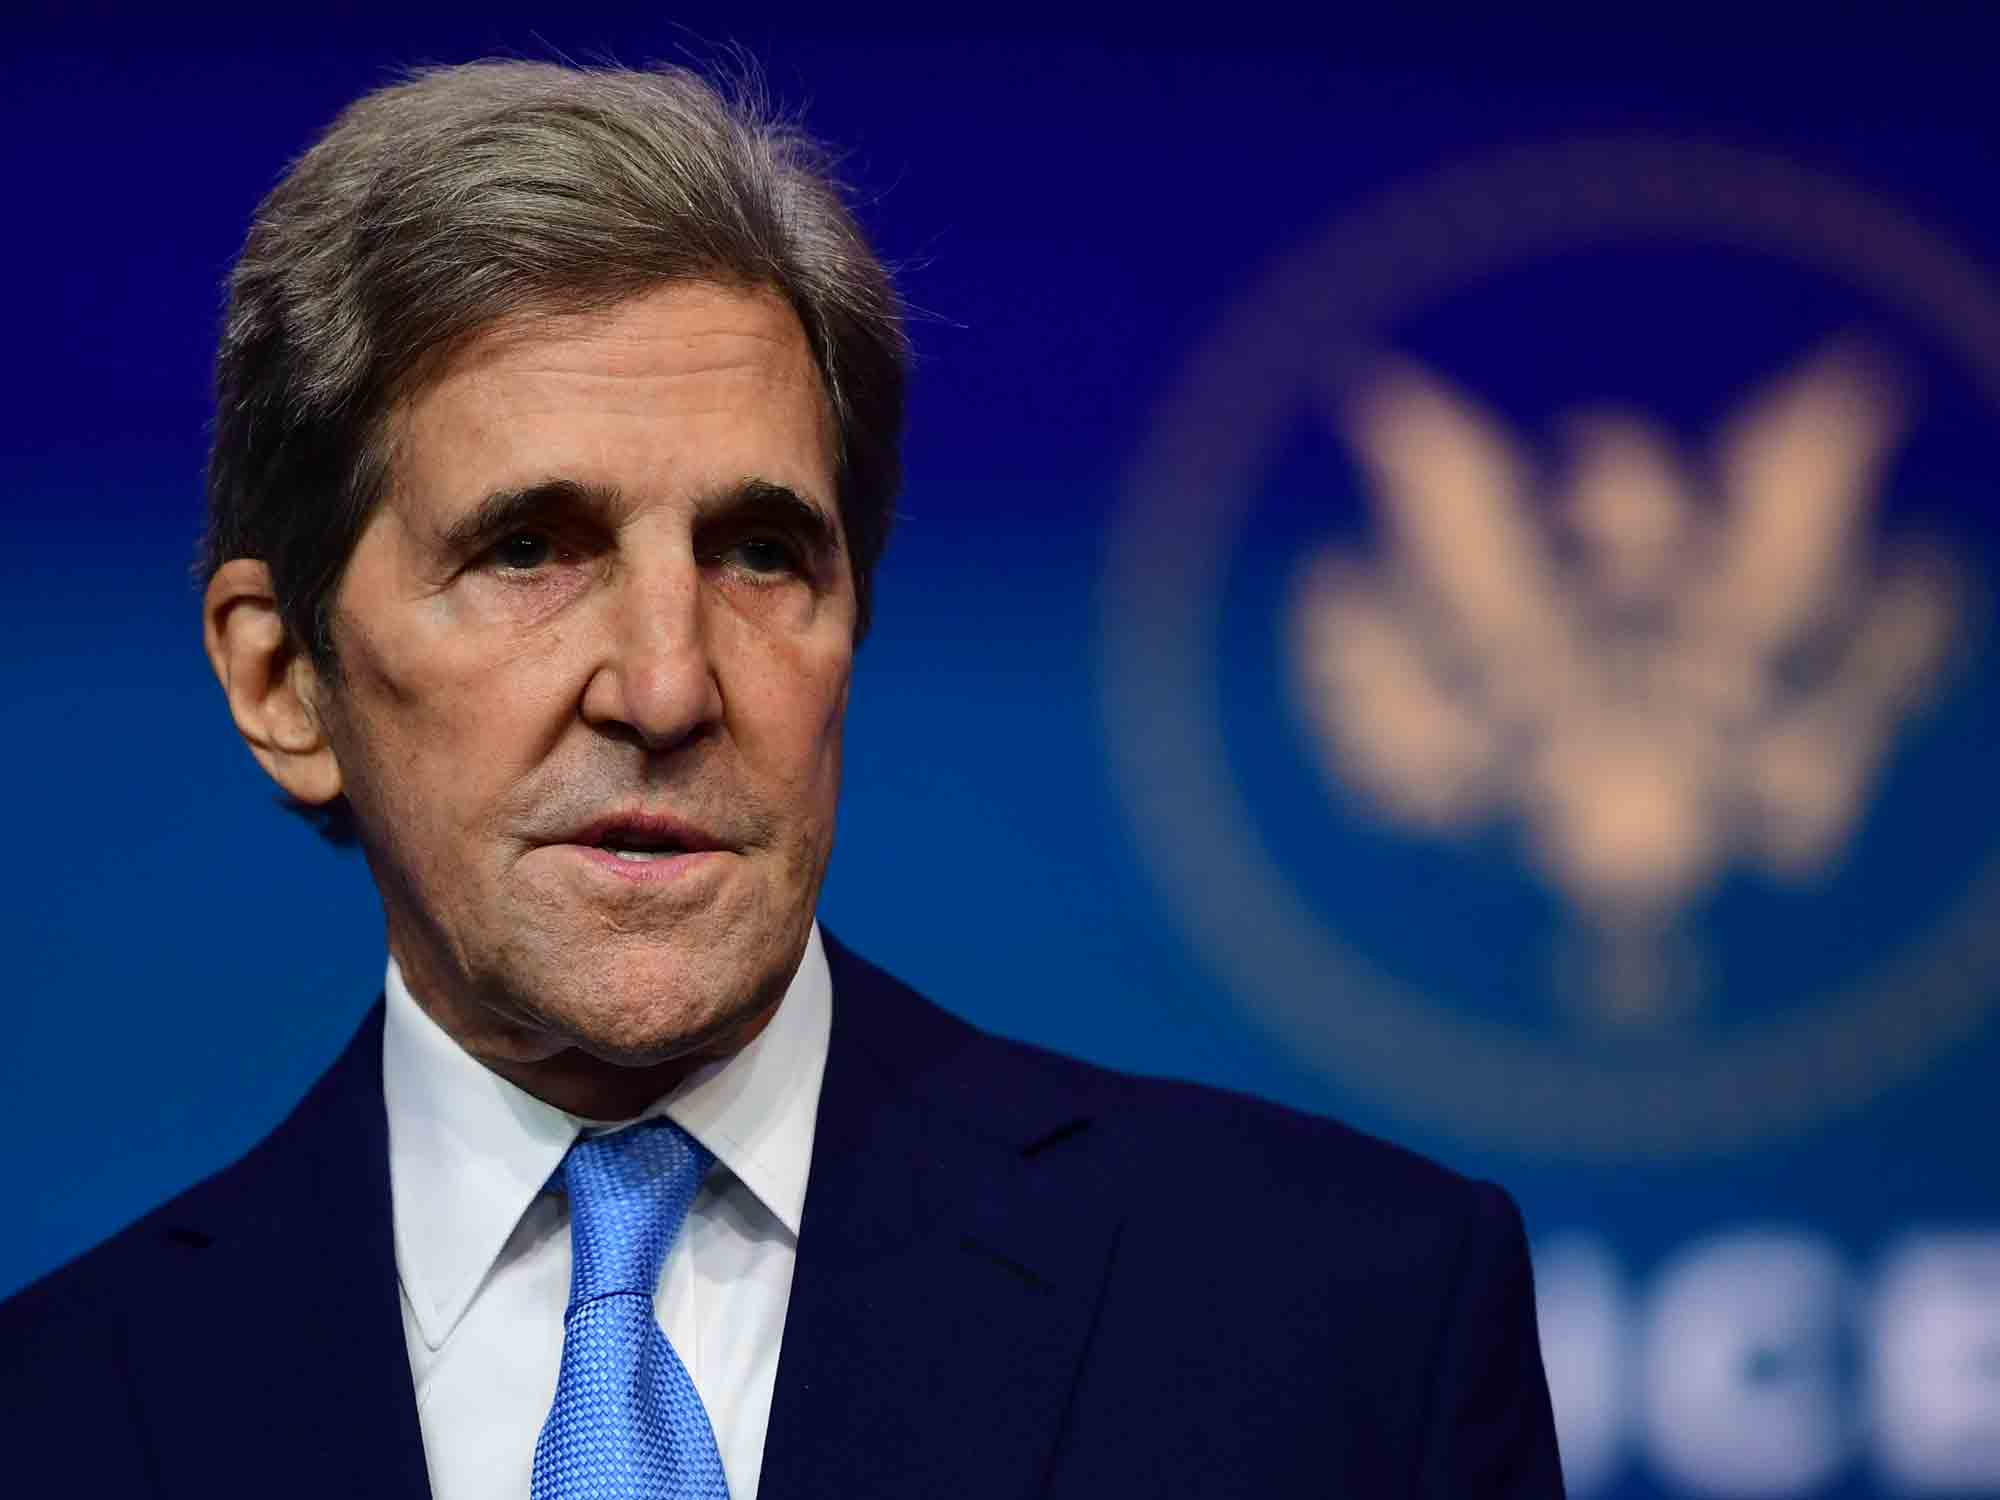 John Kerry has been named as special presidential envoy for climate.